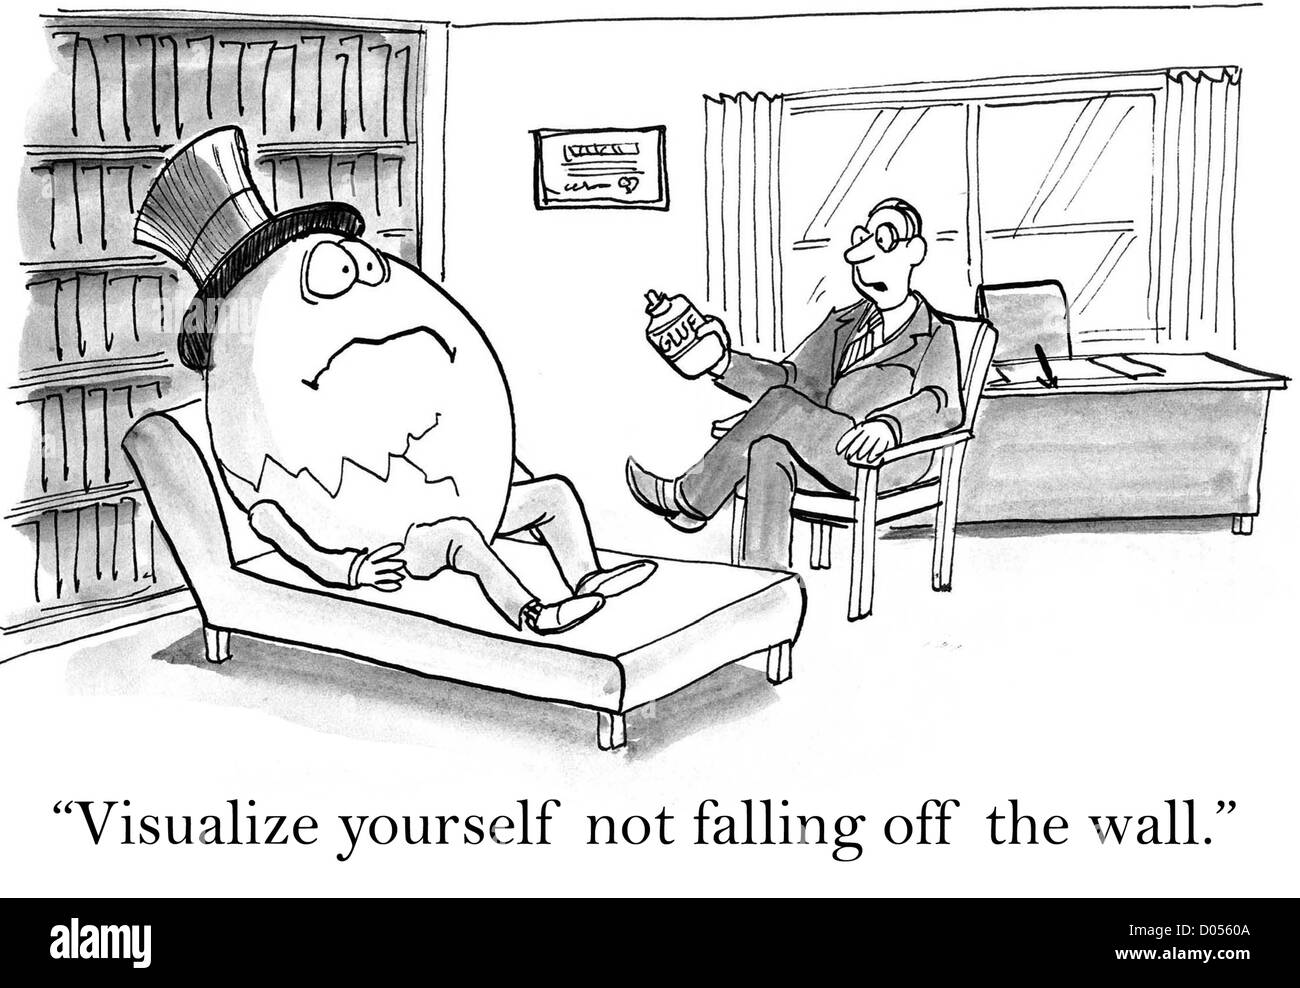 """""""Visualize yourself not falling off the wall"""". Stock Photo"""